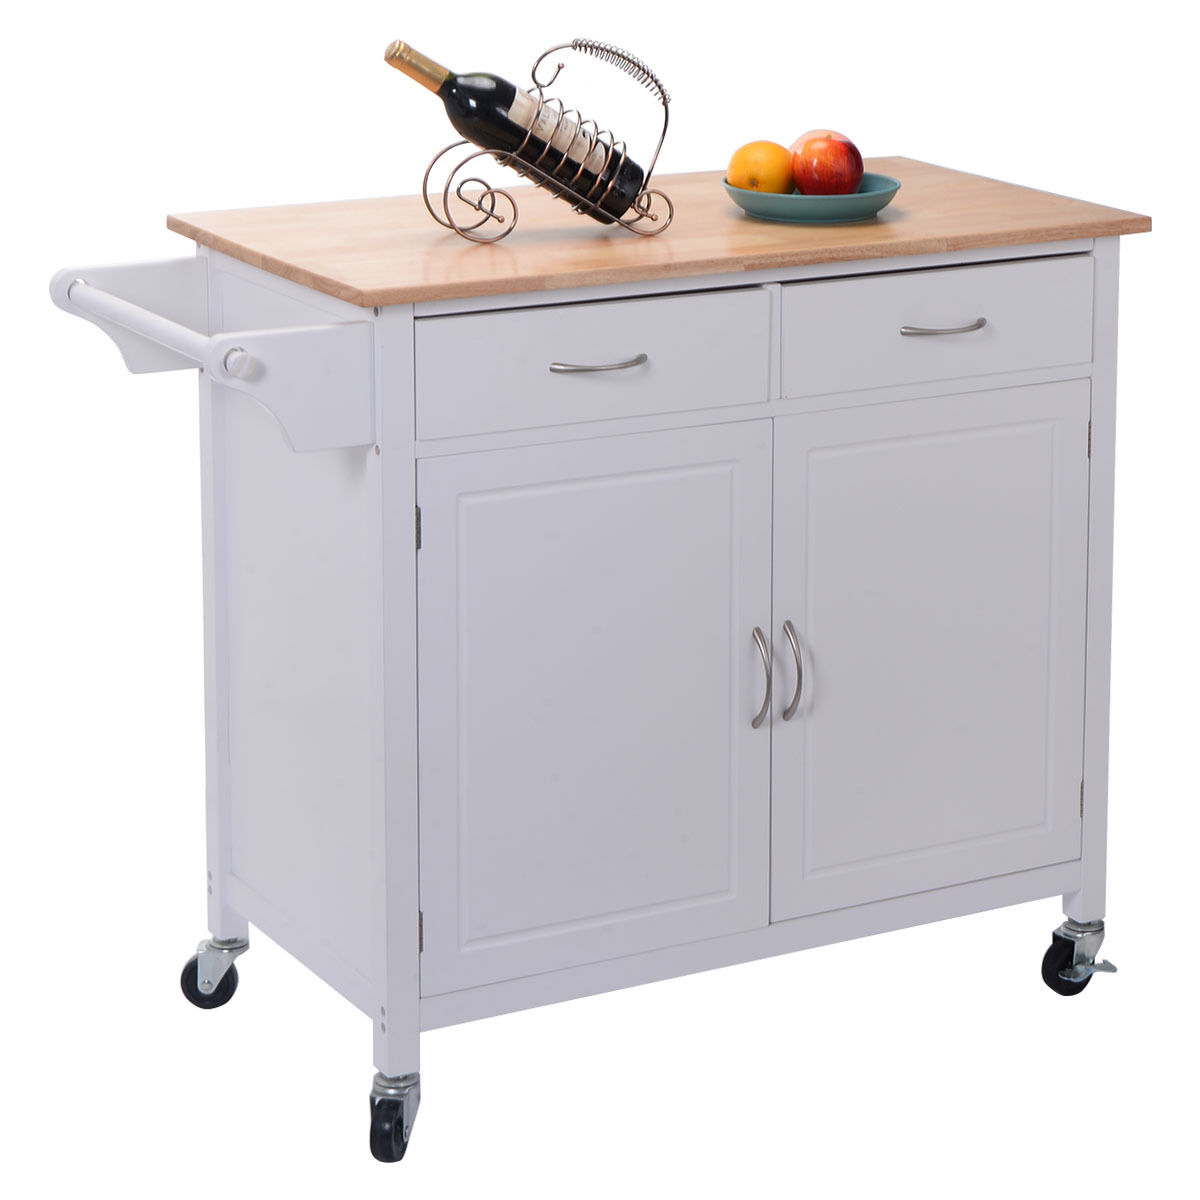 Costway Rolling Kitchen Cart Island Wood Top Storage Trolley Cabinet  Utility Modern   Walmart.com